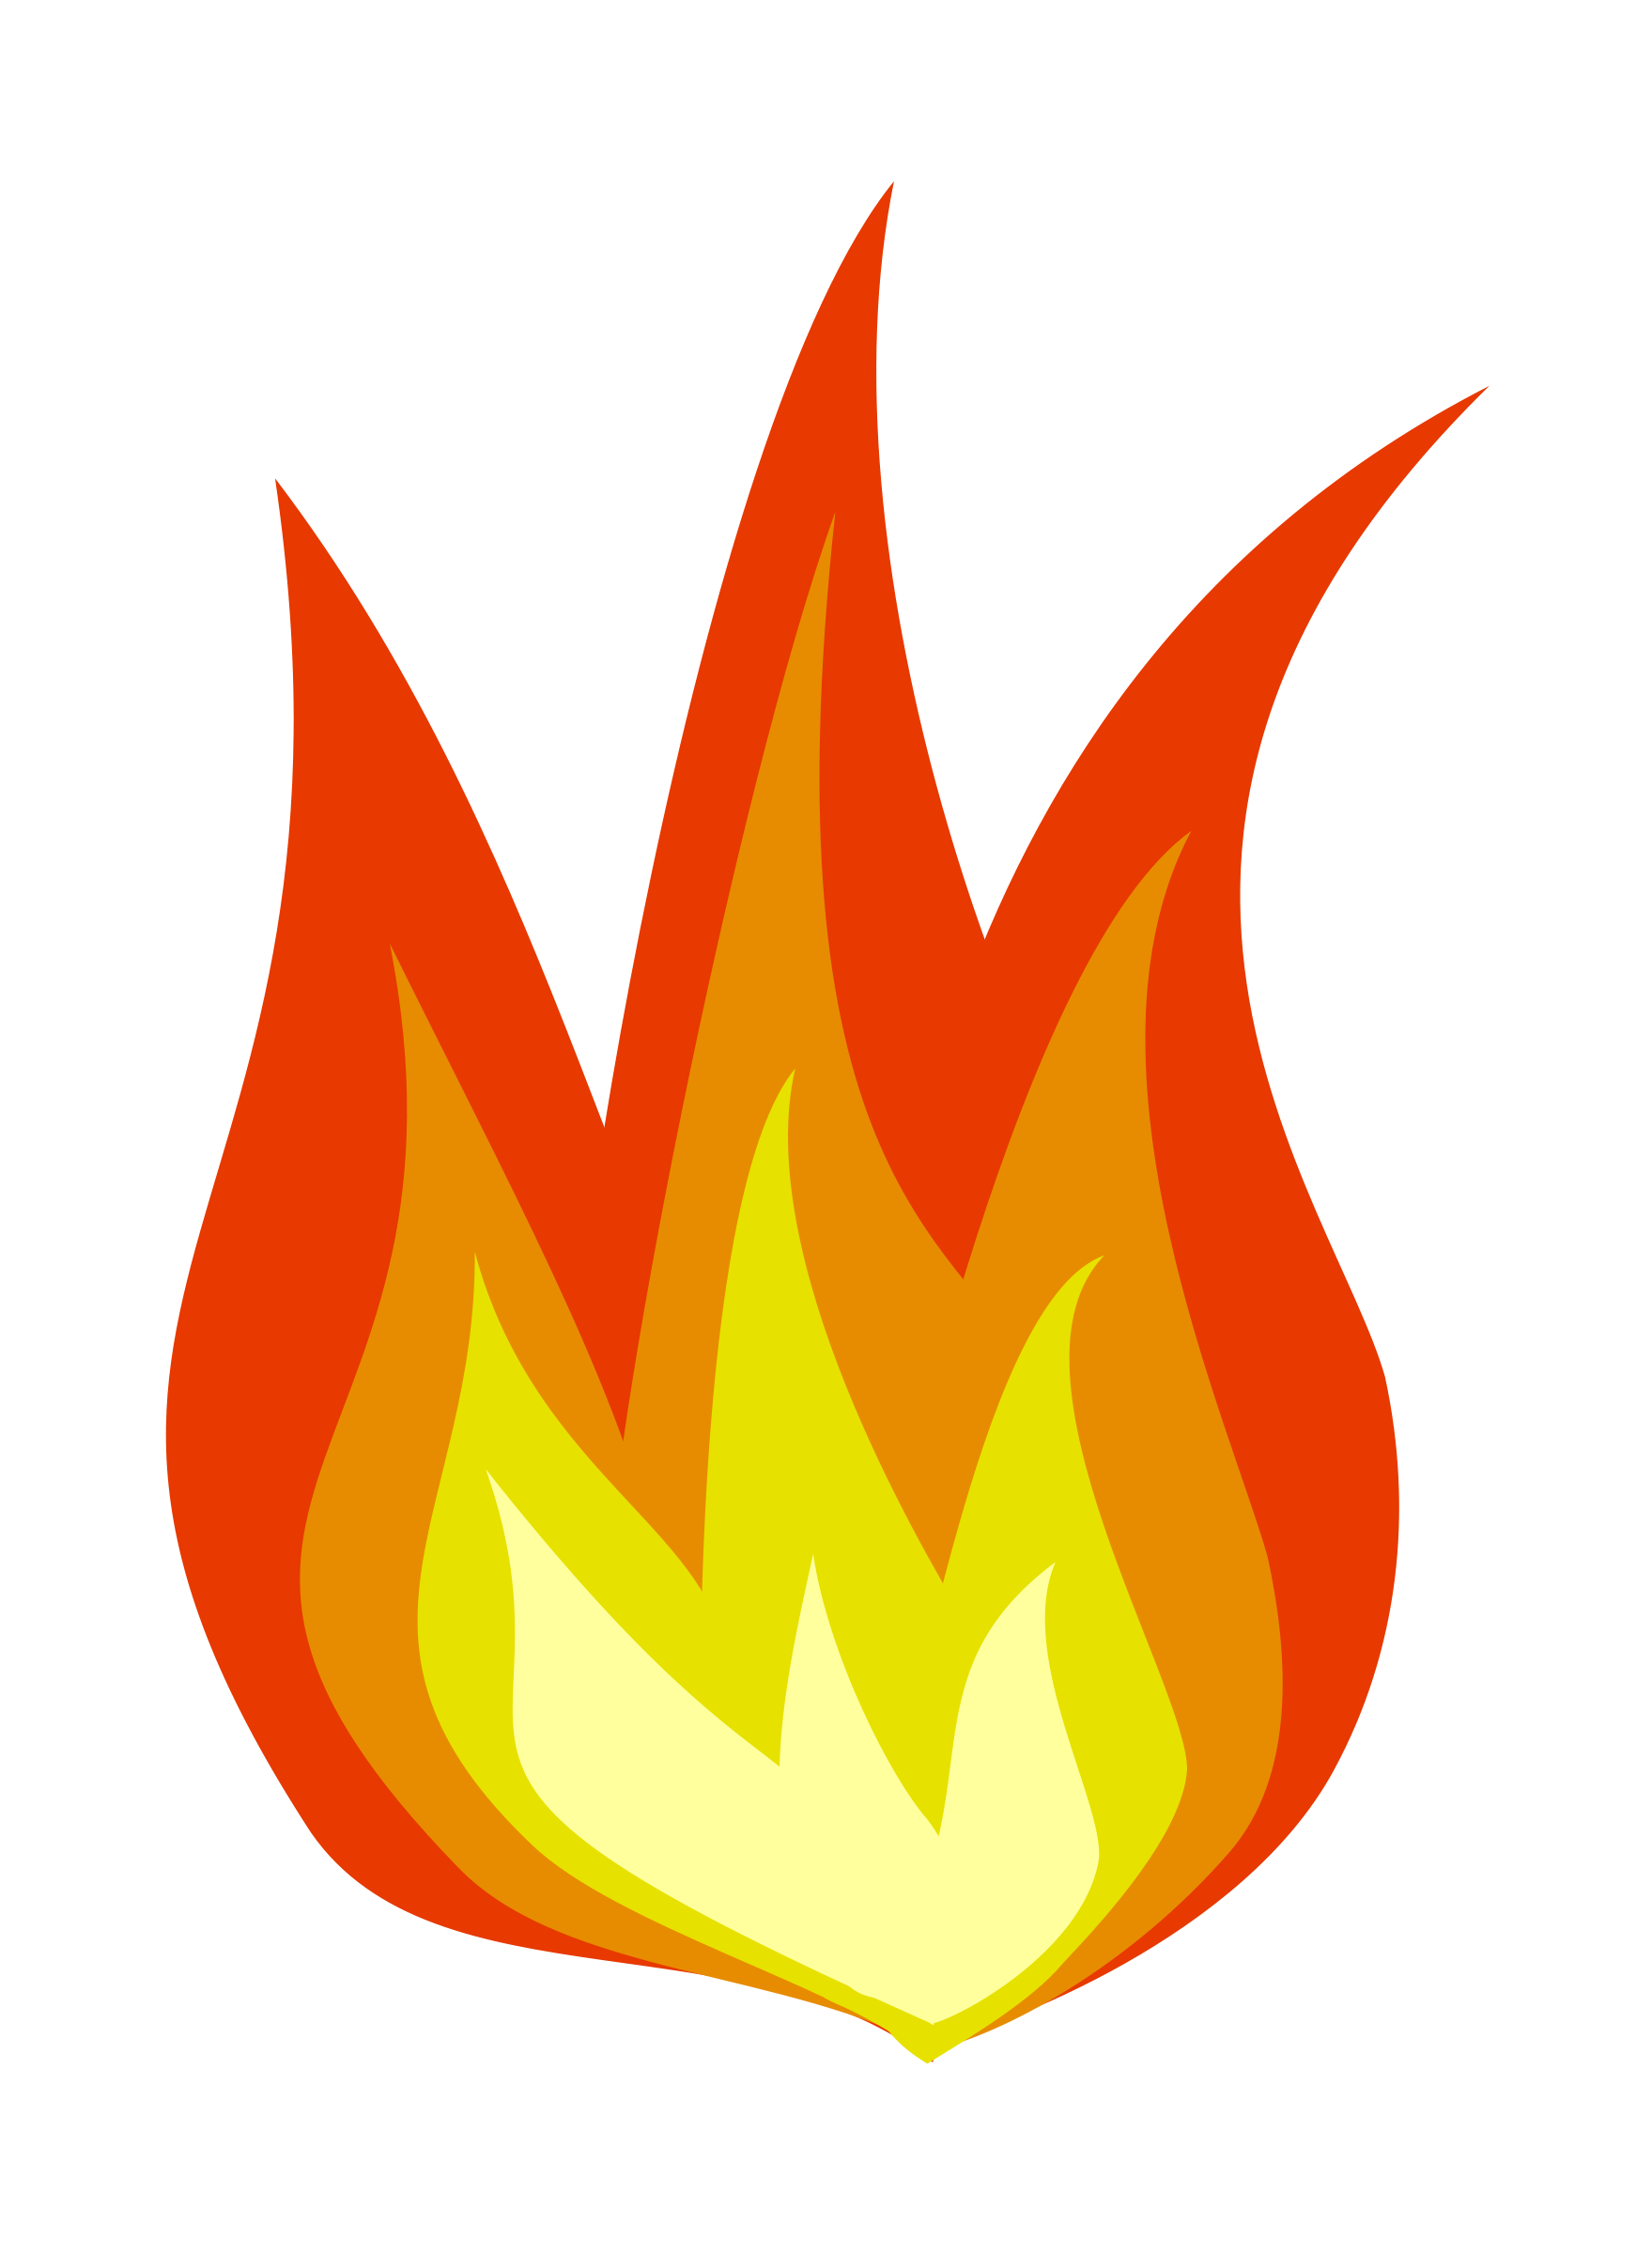 Flames clipart png. Collection of flame